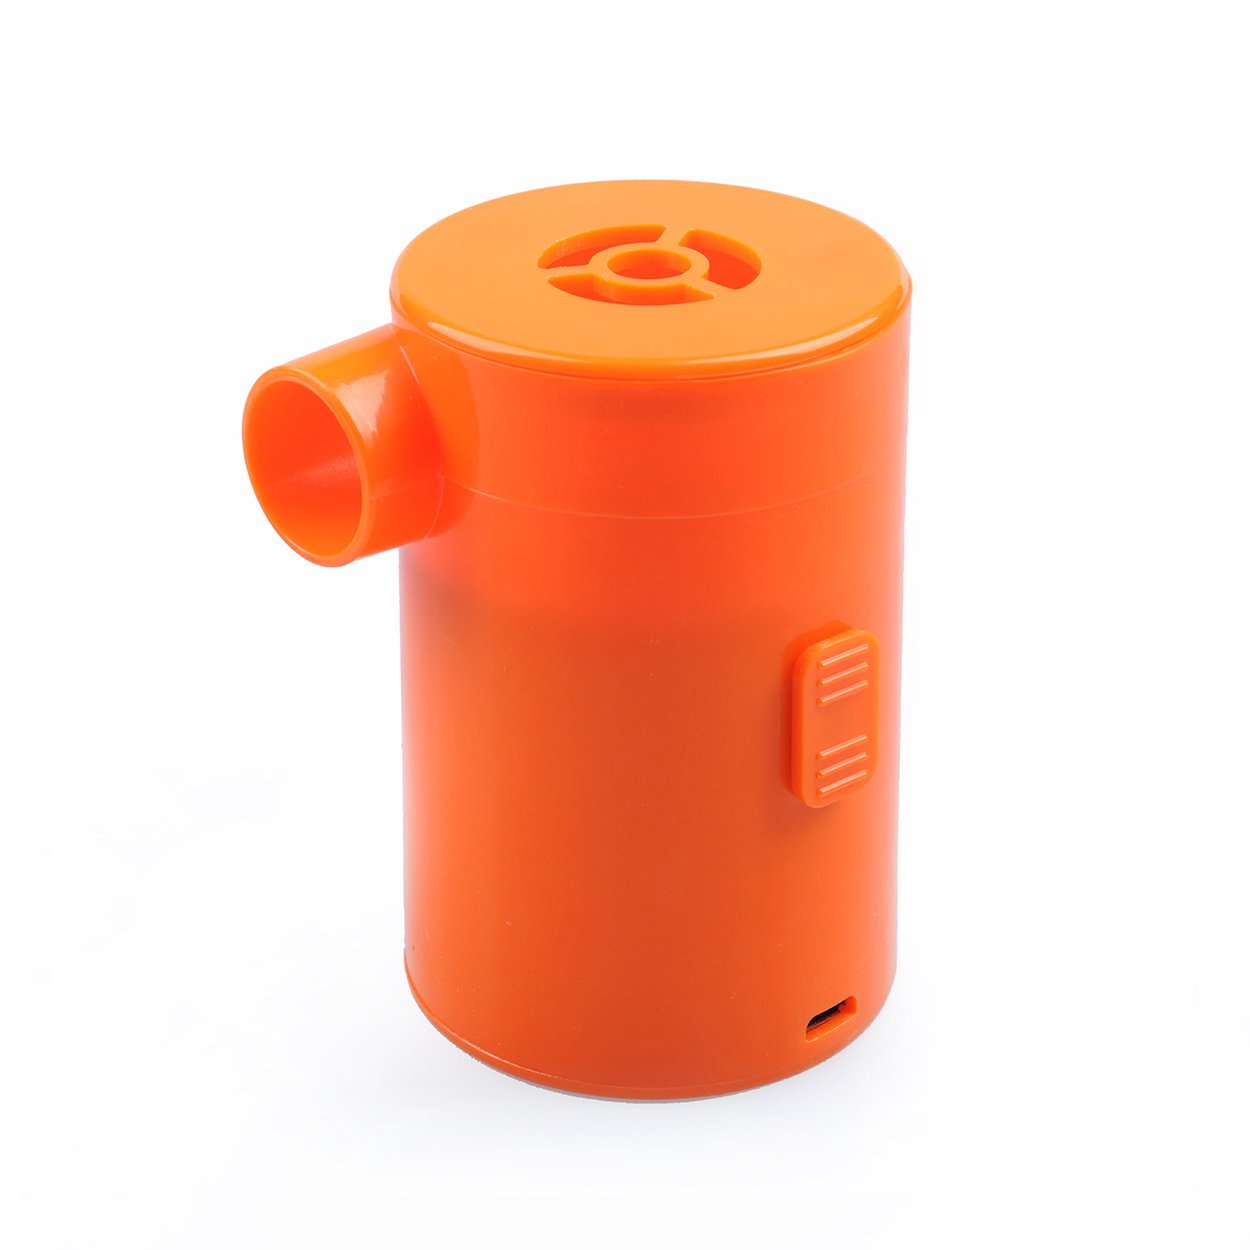 LC Prime Mini Electric Air Pump, Portable 2 in 1 Inflator Deflator USB Rechargeable Pump Quick Inflate Deflate for Airbeds Mattresses Paddling Swimming Pools Toys Plastic Orange